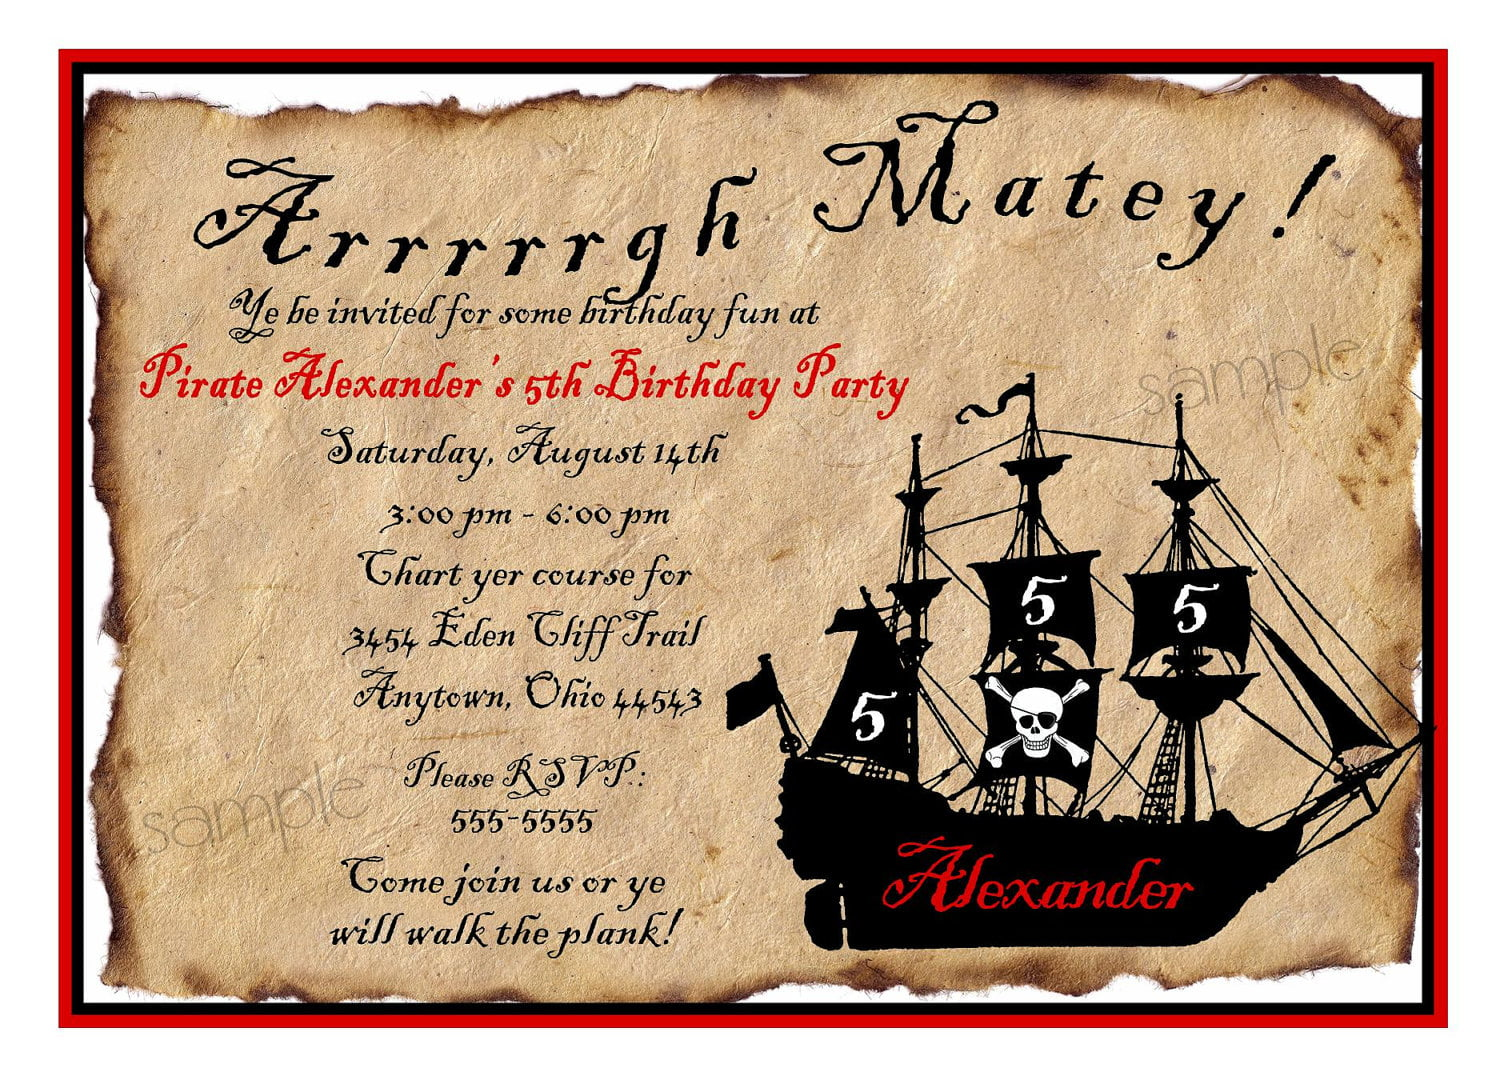 Showy Letter Pirate Birthday Invitations Wording Pirate Birthday Party Invitations Wording Free Invitation Birthday Party Invitation Wording Samples Adults Birthday Party Invitation Wording Bounce Hou wedding invitation Birthday Party Invitation Wording